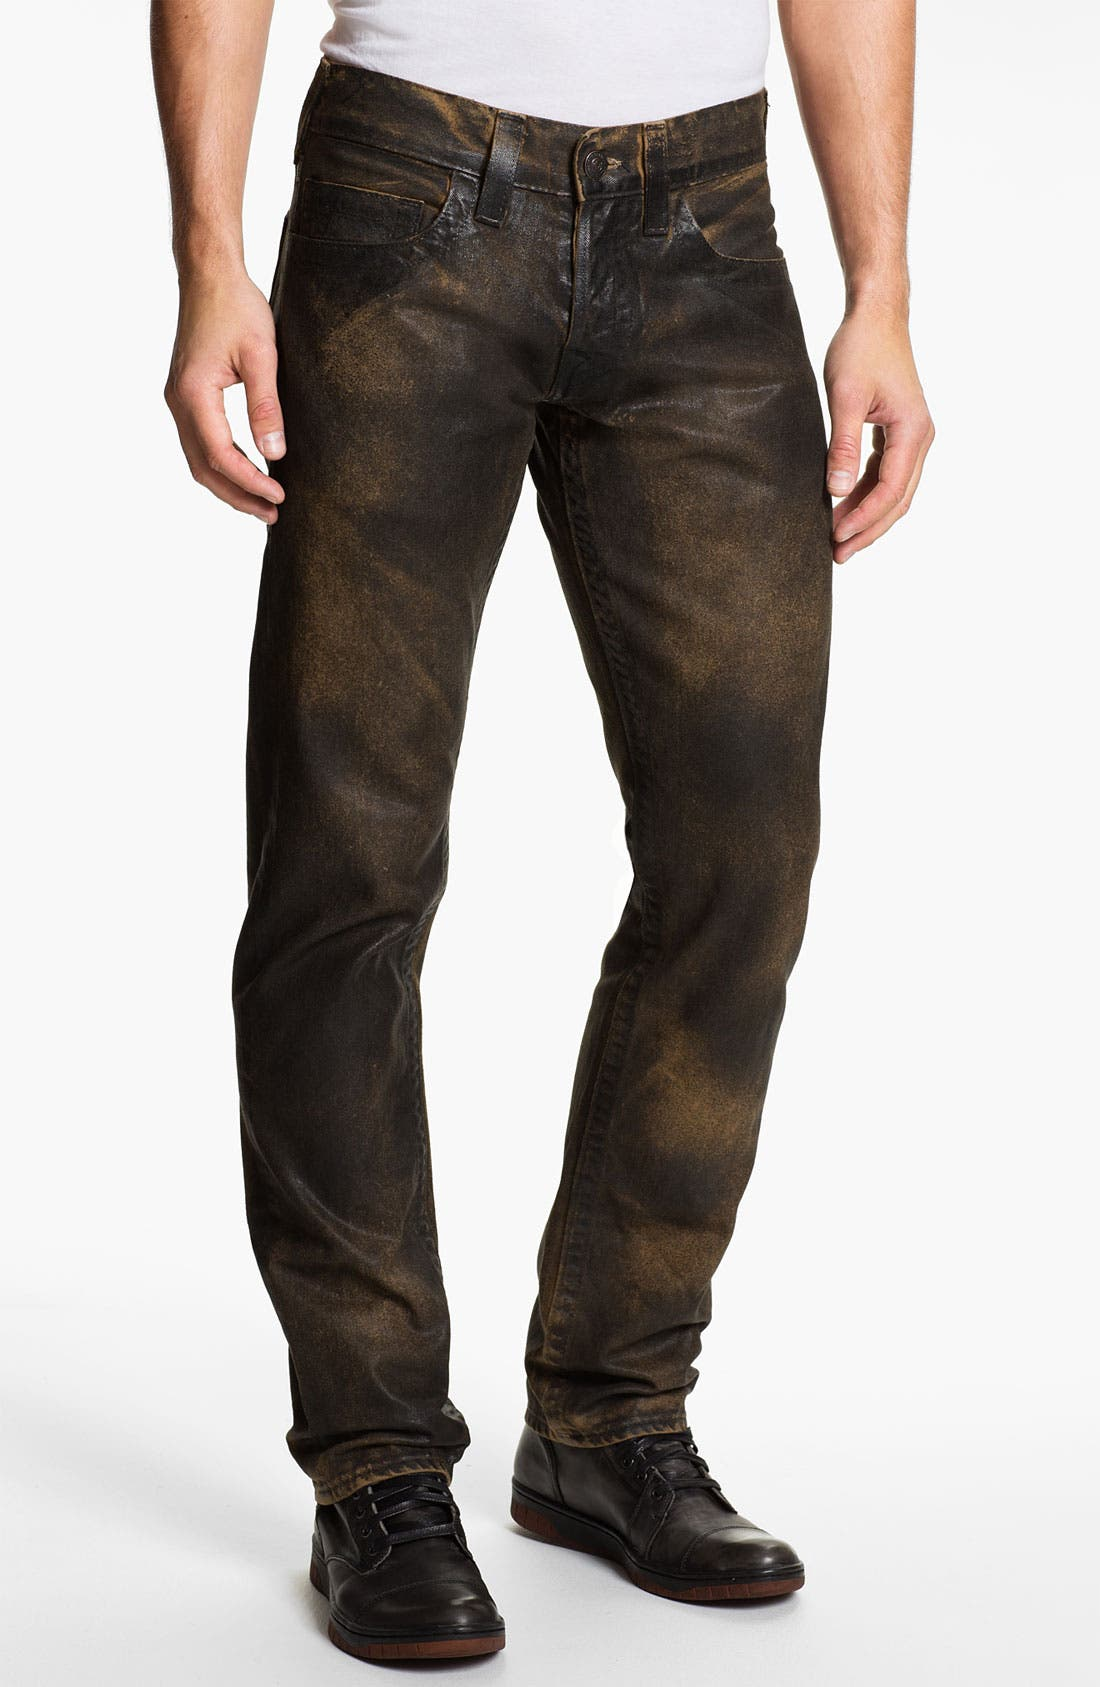 Alternate Image 2  - True Religion Brand Jeans 'Geno' Tapered Straight Leg Jeans (Crackle Coated Black Vintage)